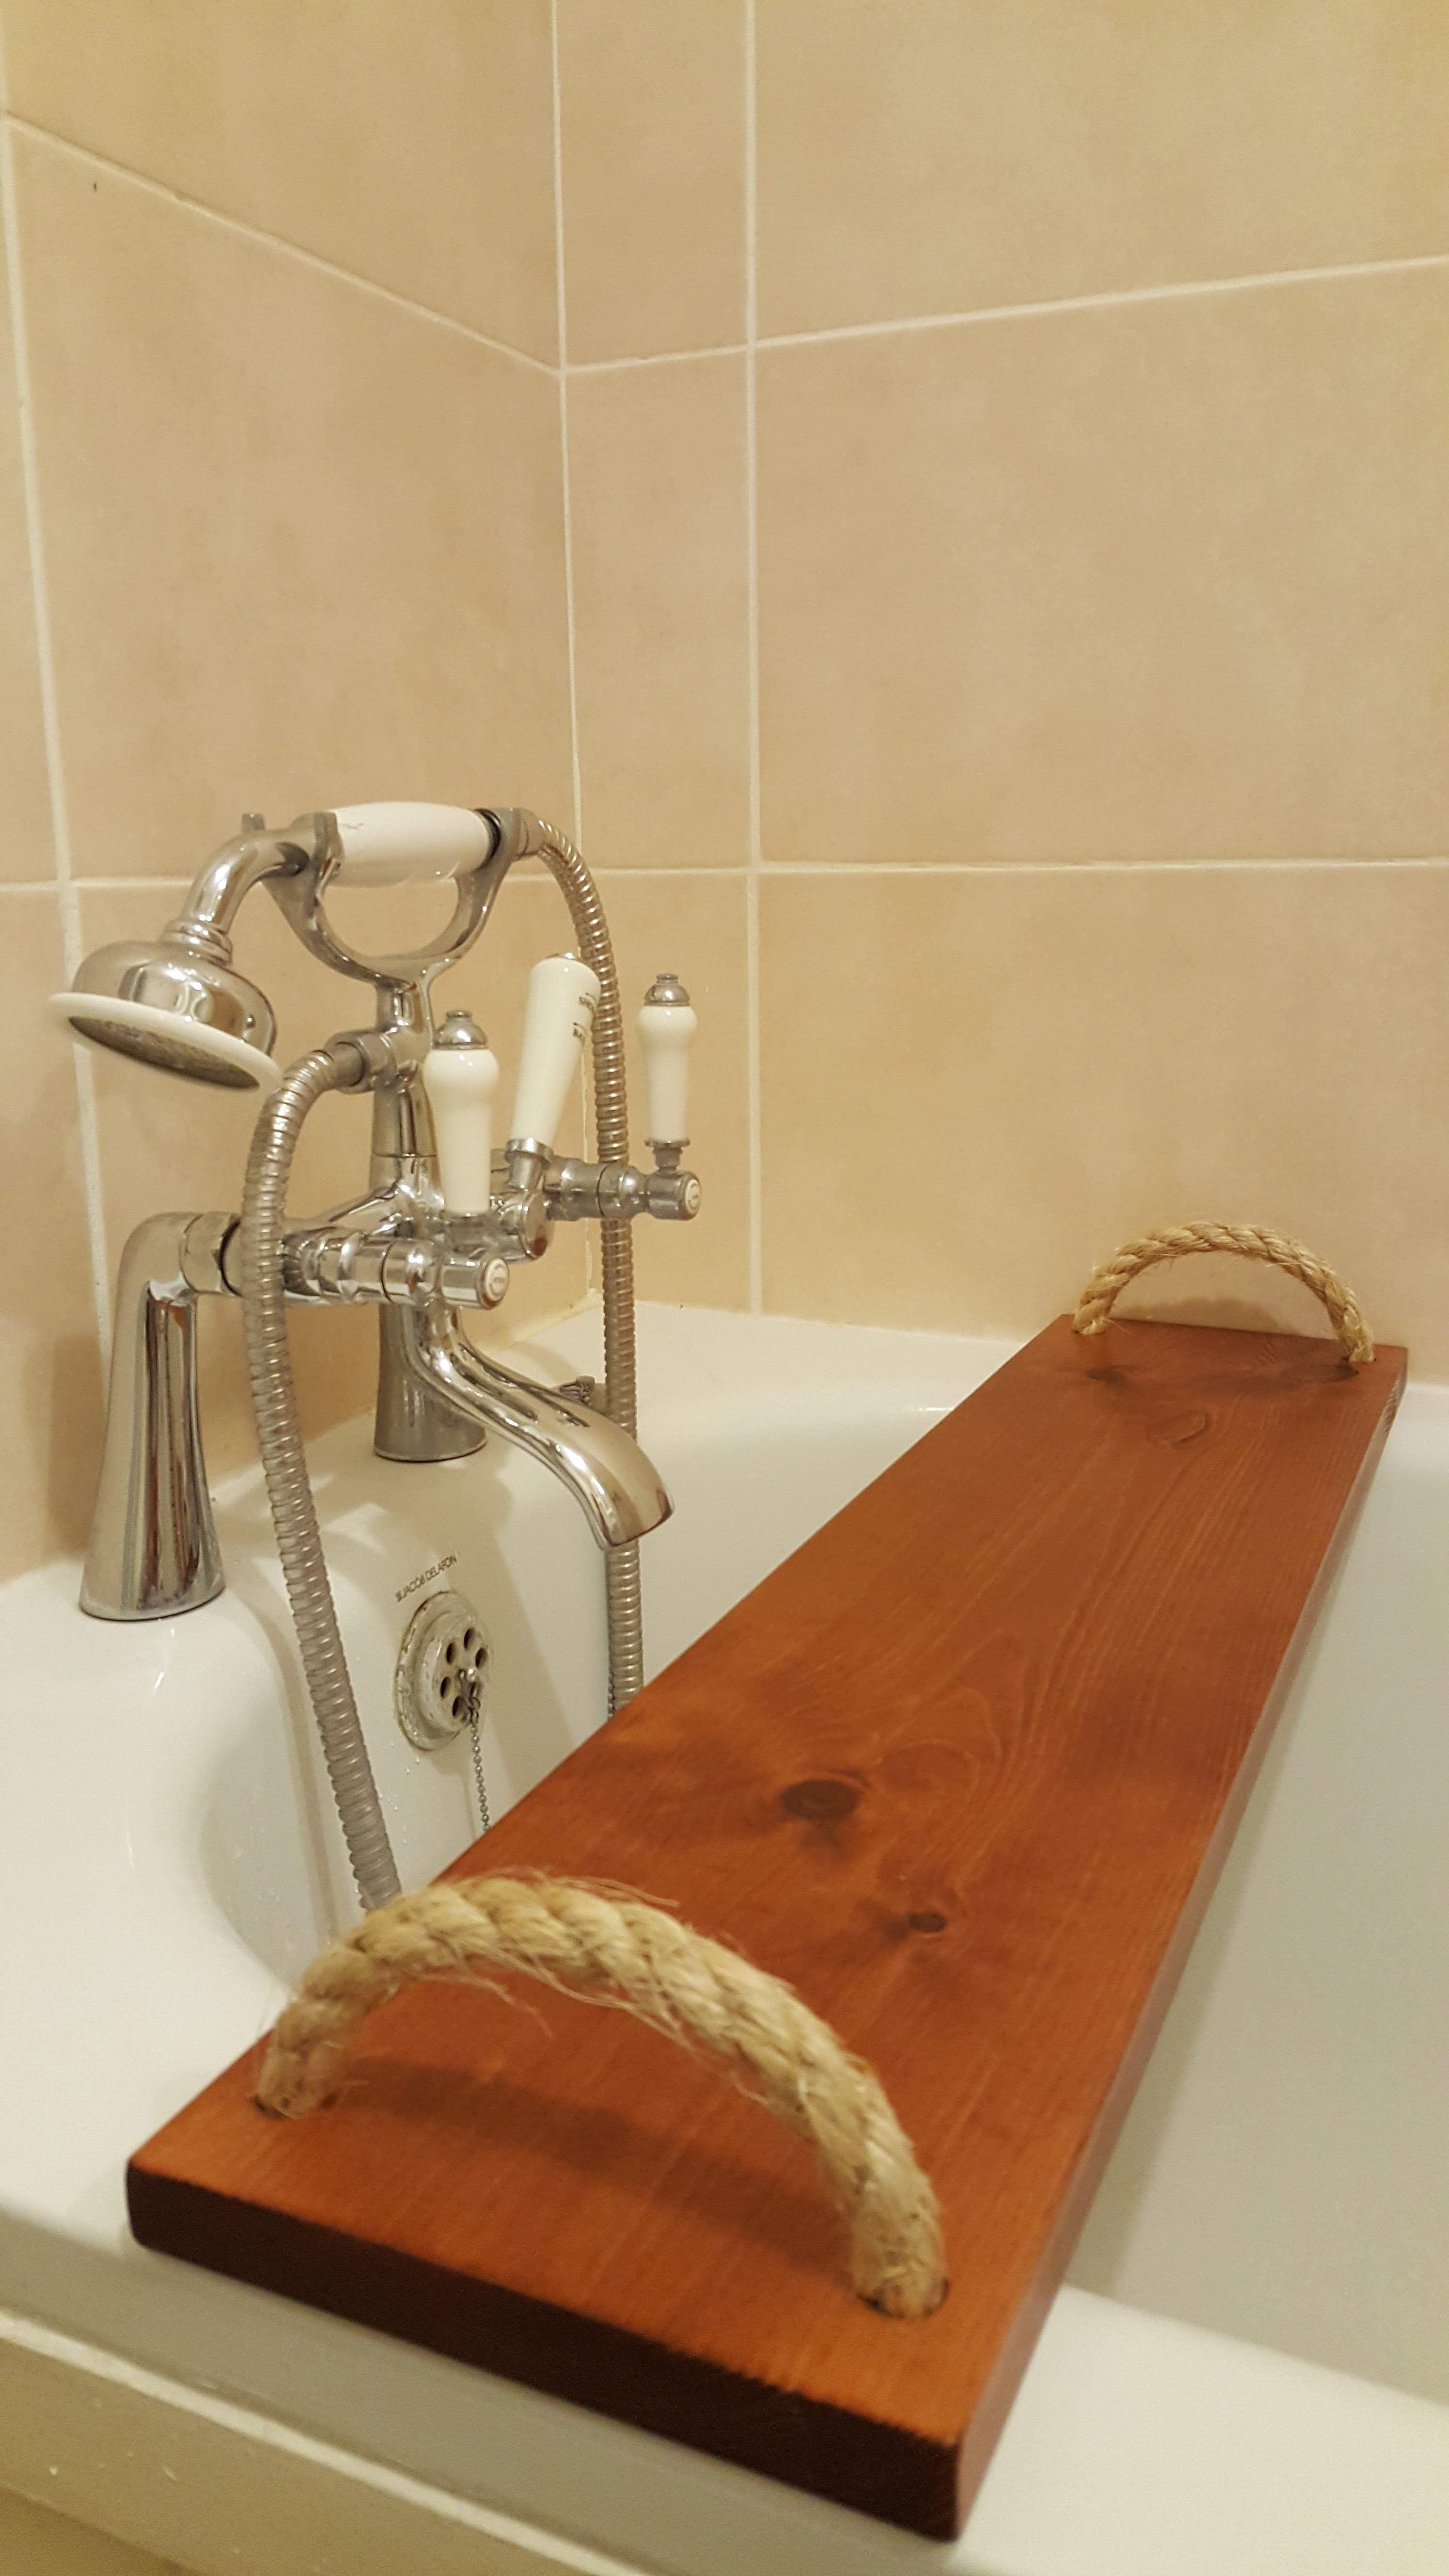 Solid Pine Wood BathTub Rack Bridge Bath Caddy Tray Wooden Handmade ...